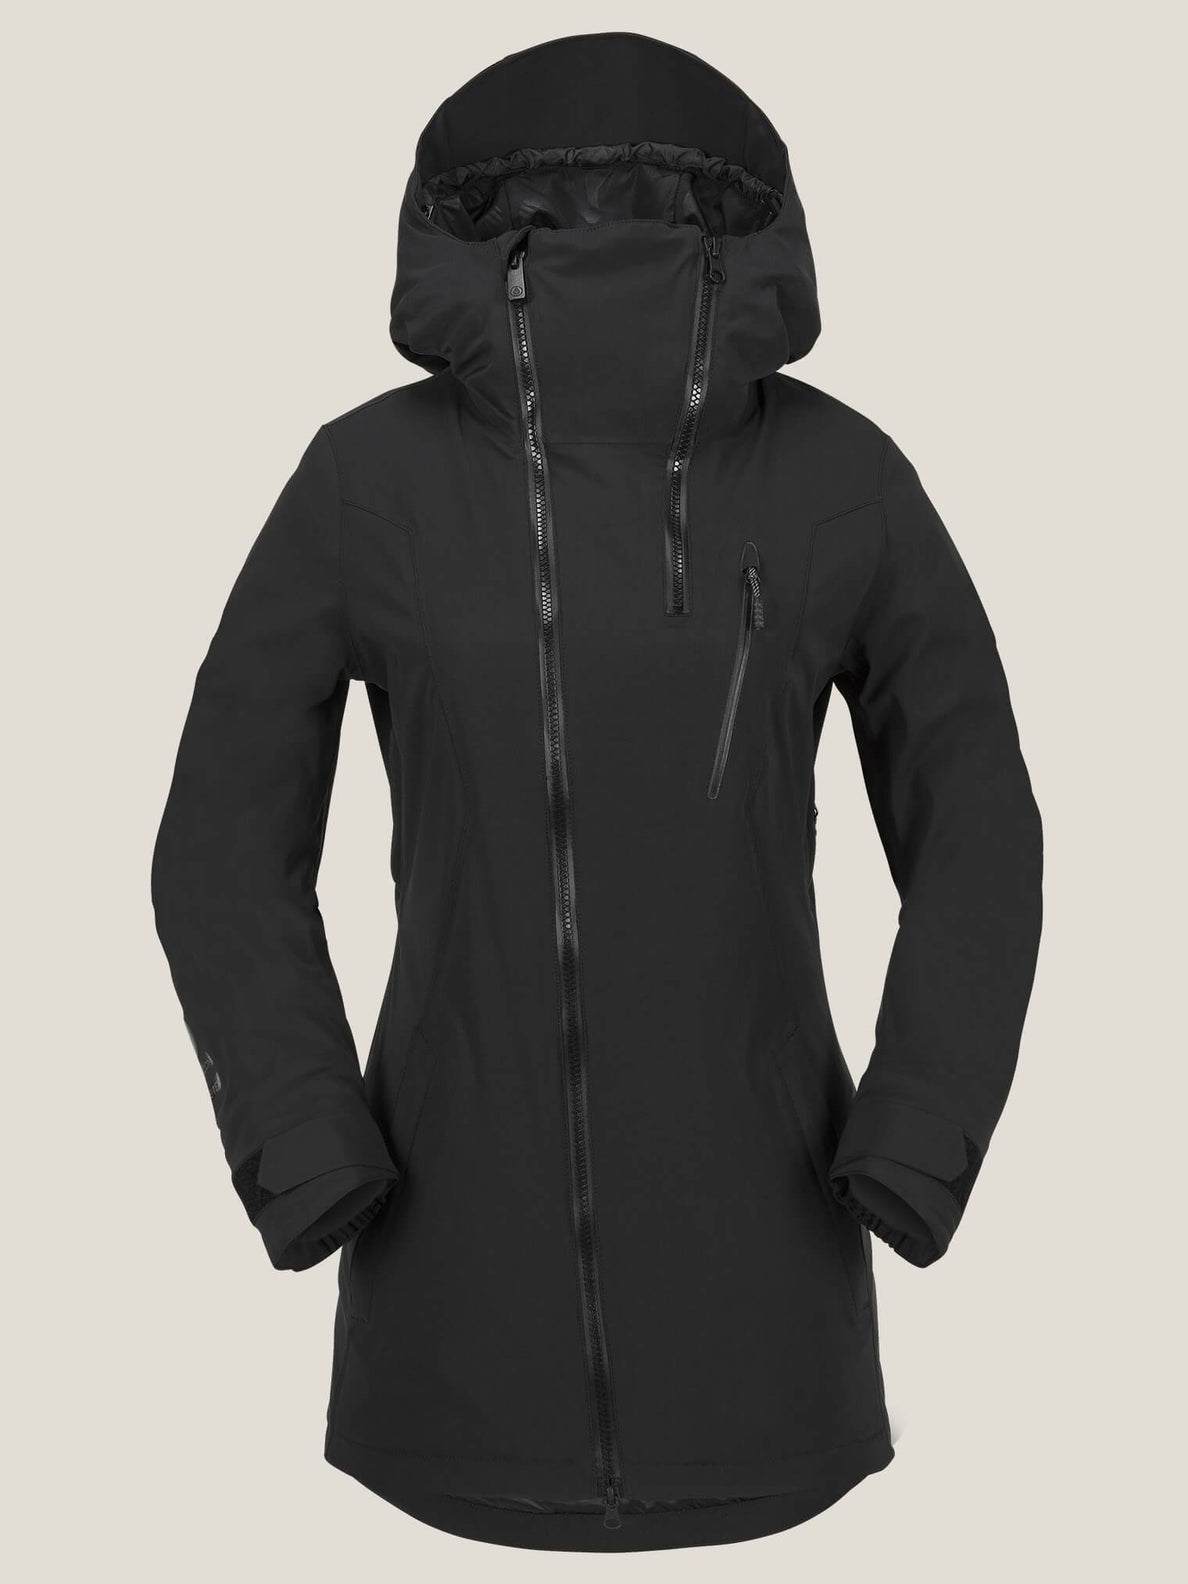 V Insulated Gore-tex® Stretch Jacket In Black, Front View